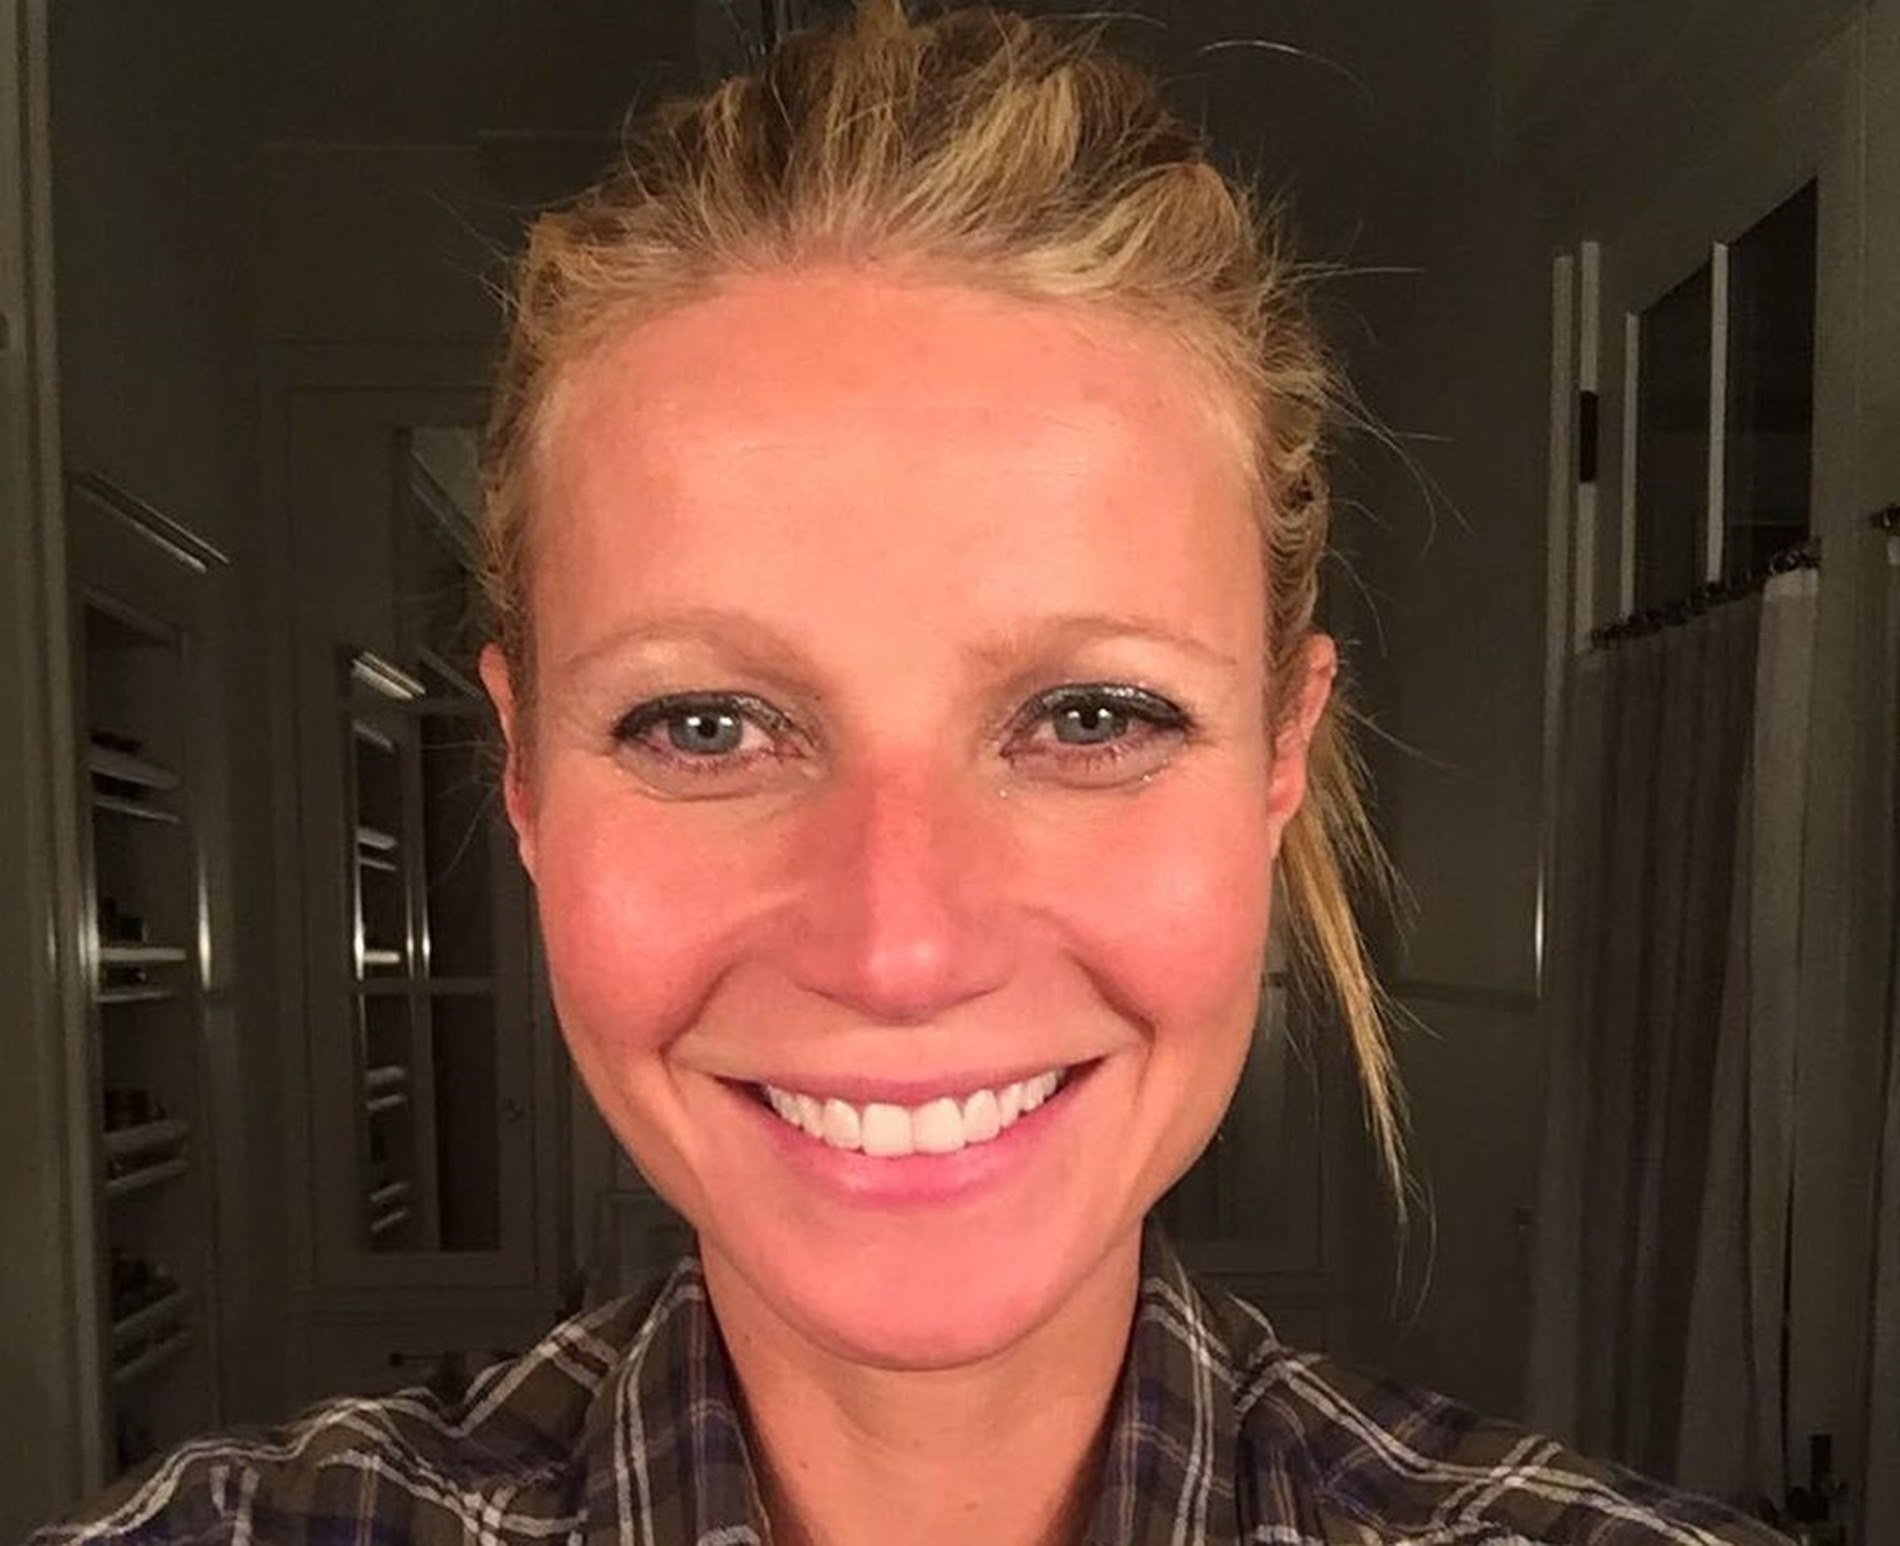 gwyneth-paltrow-shares-out-of-this-world-birthday-suit-picture-as-she-turns-48-for-some-fans-this-is-a-disappointing-turn